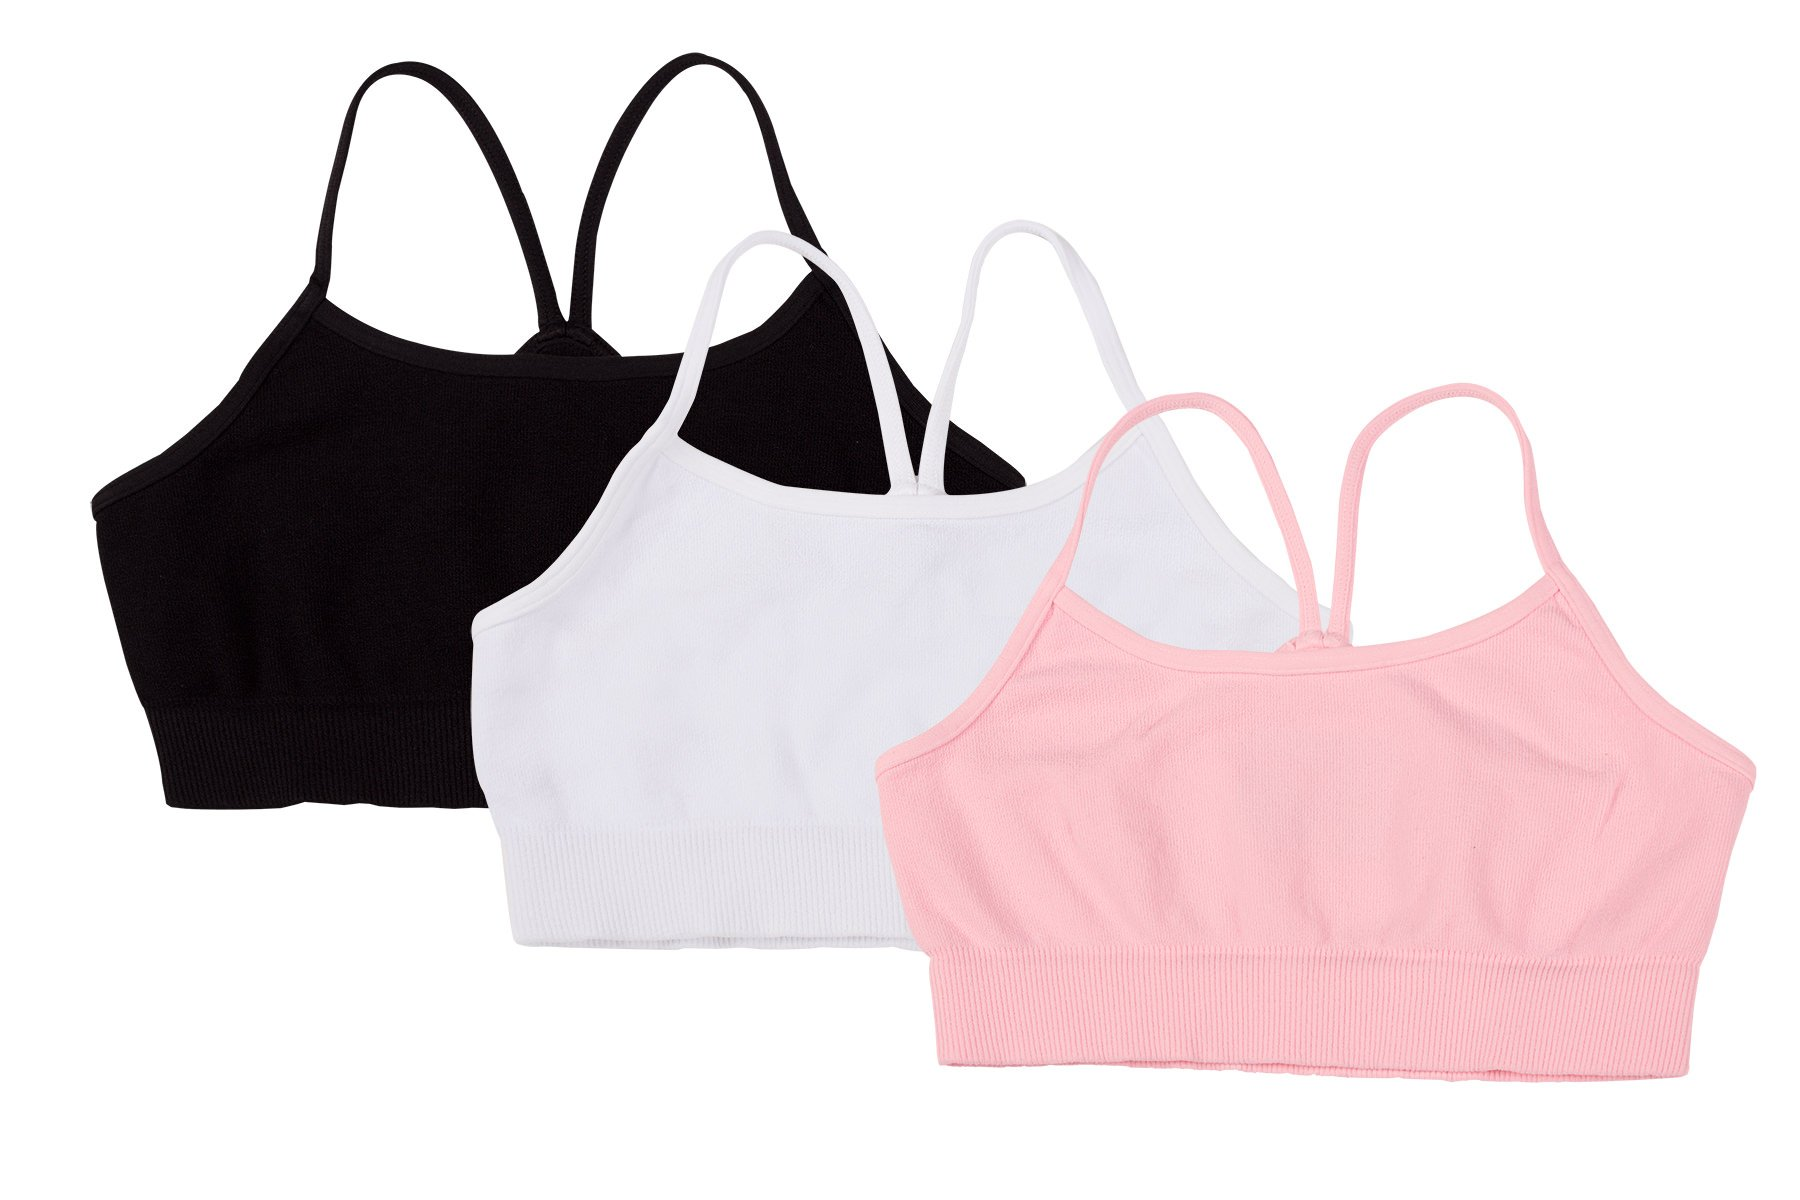 Kurve Girls' Nylon & Spandex Blended Crop Training Bra, UV Protective Fabric UPF 50+ (Made with Love in The USA)